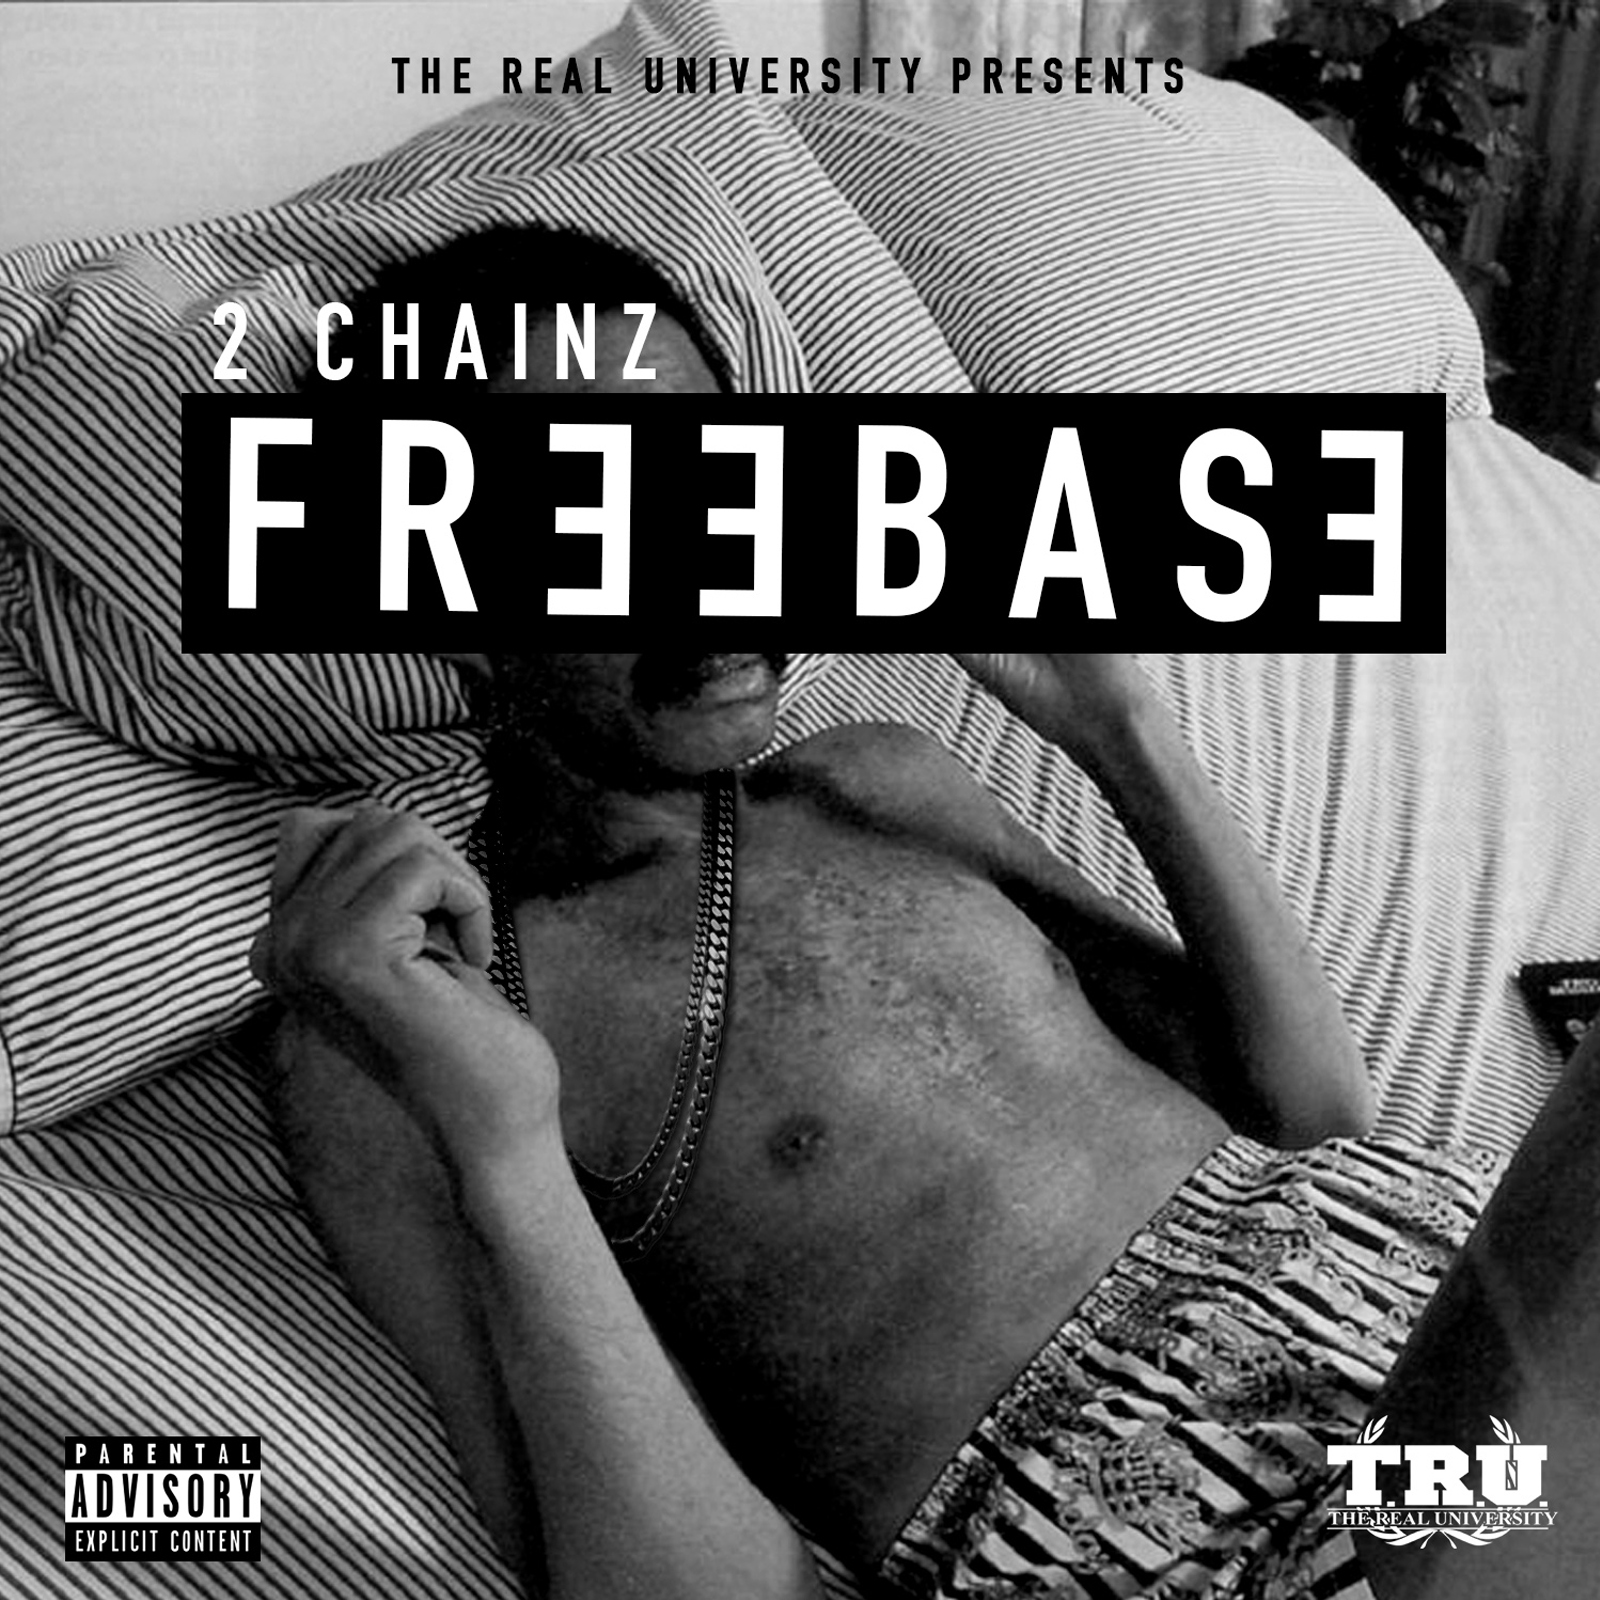 2 Chains FreeBase